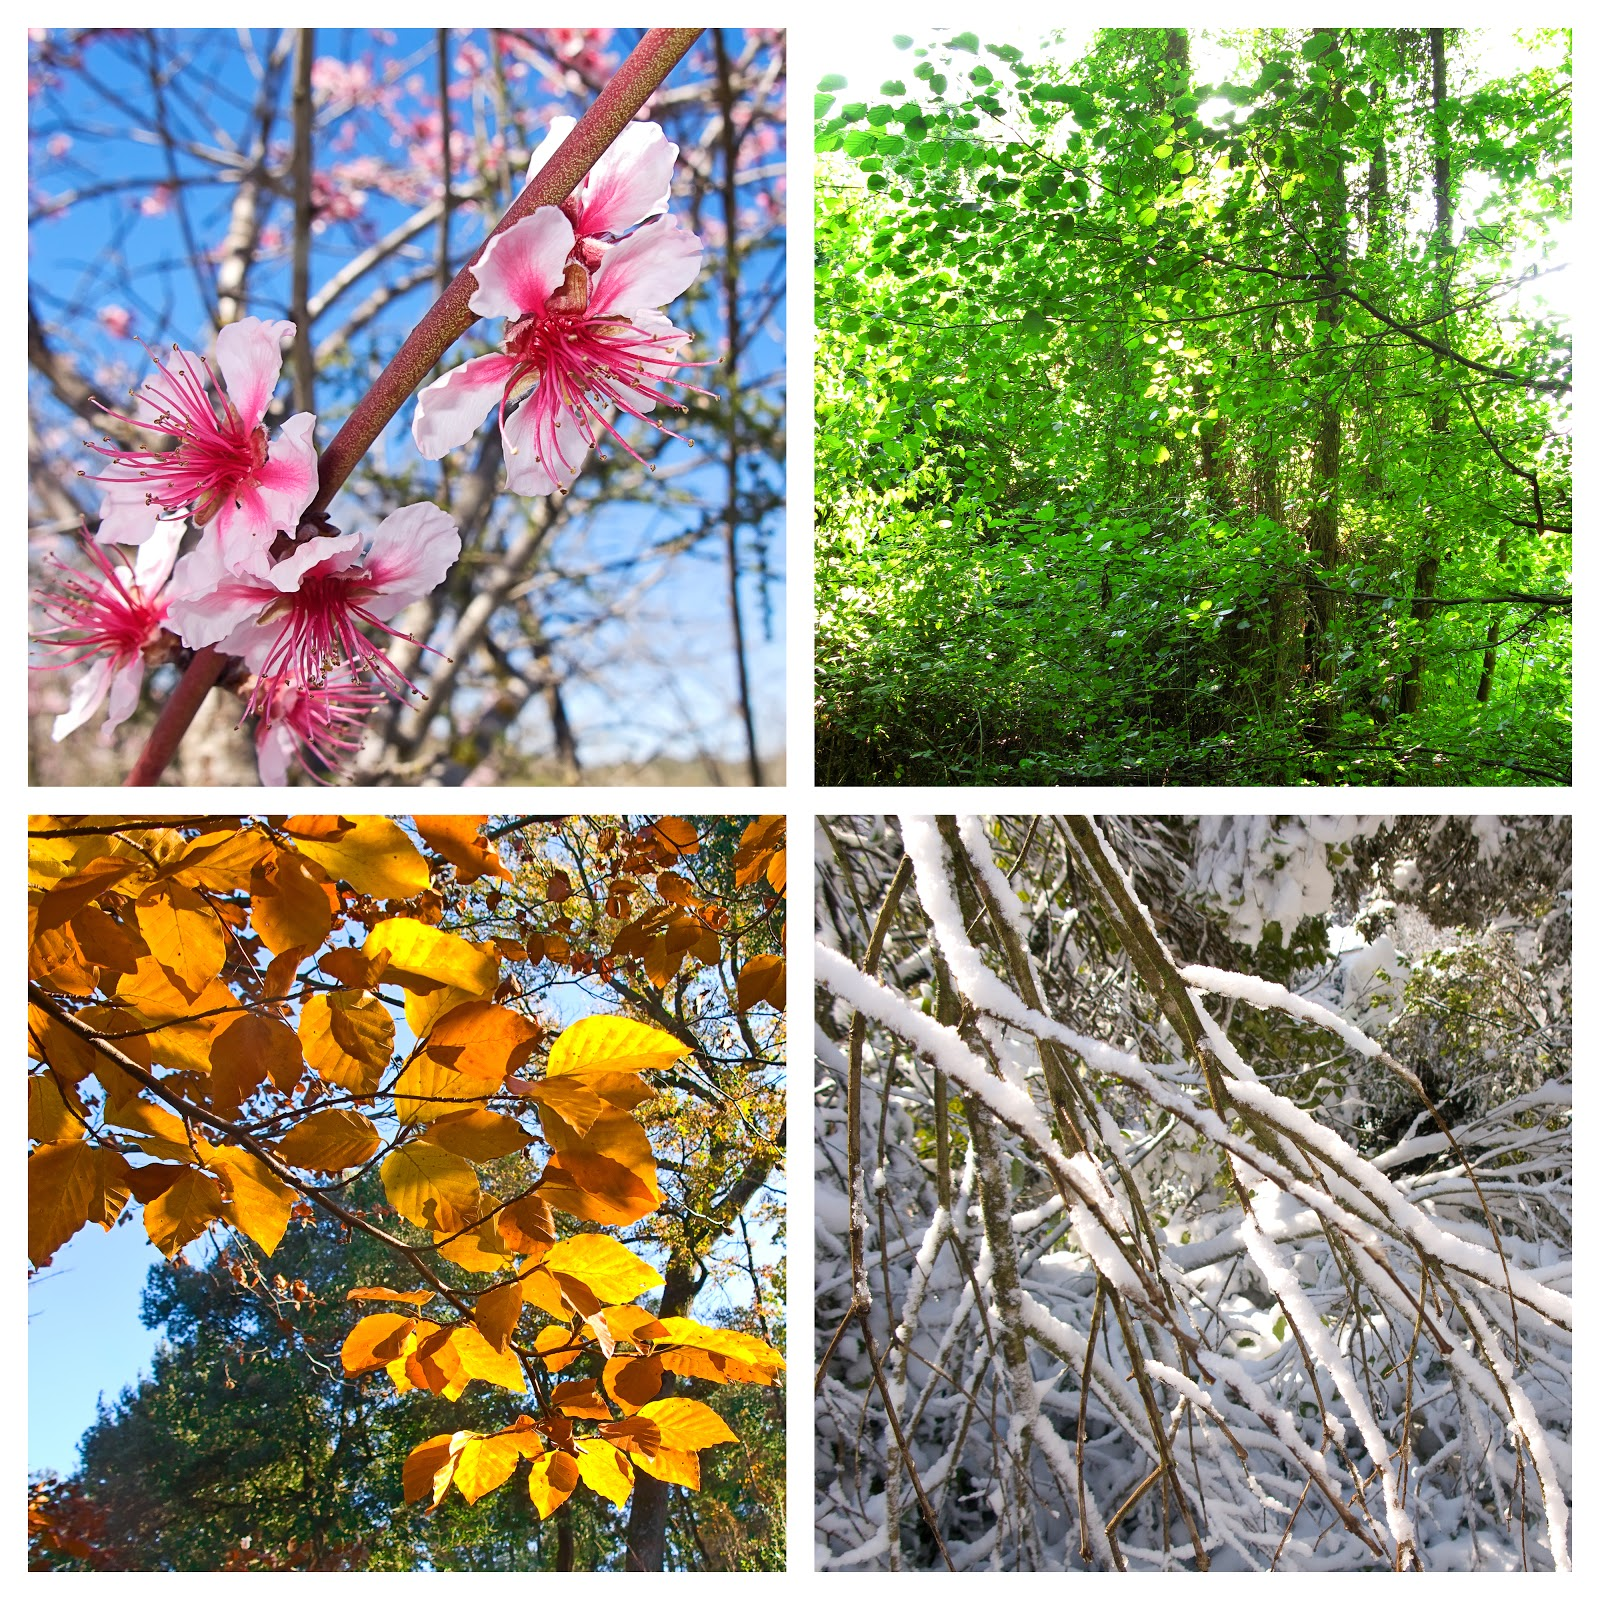 Caring For Flowering Plants Through The Changing Season